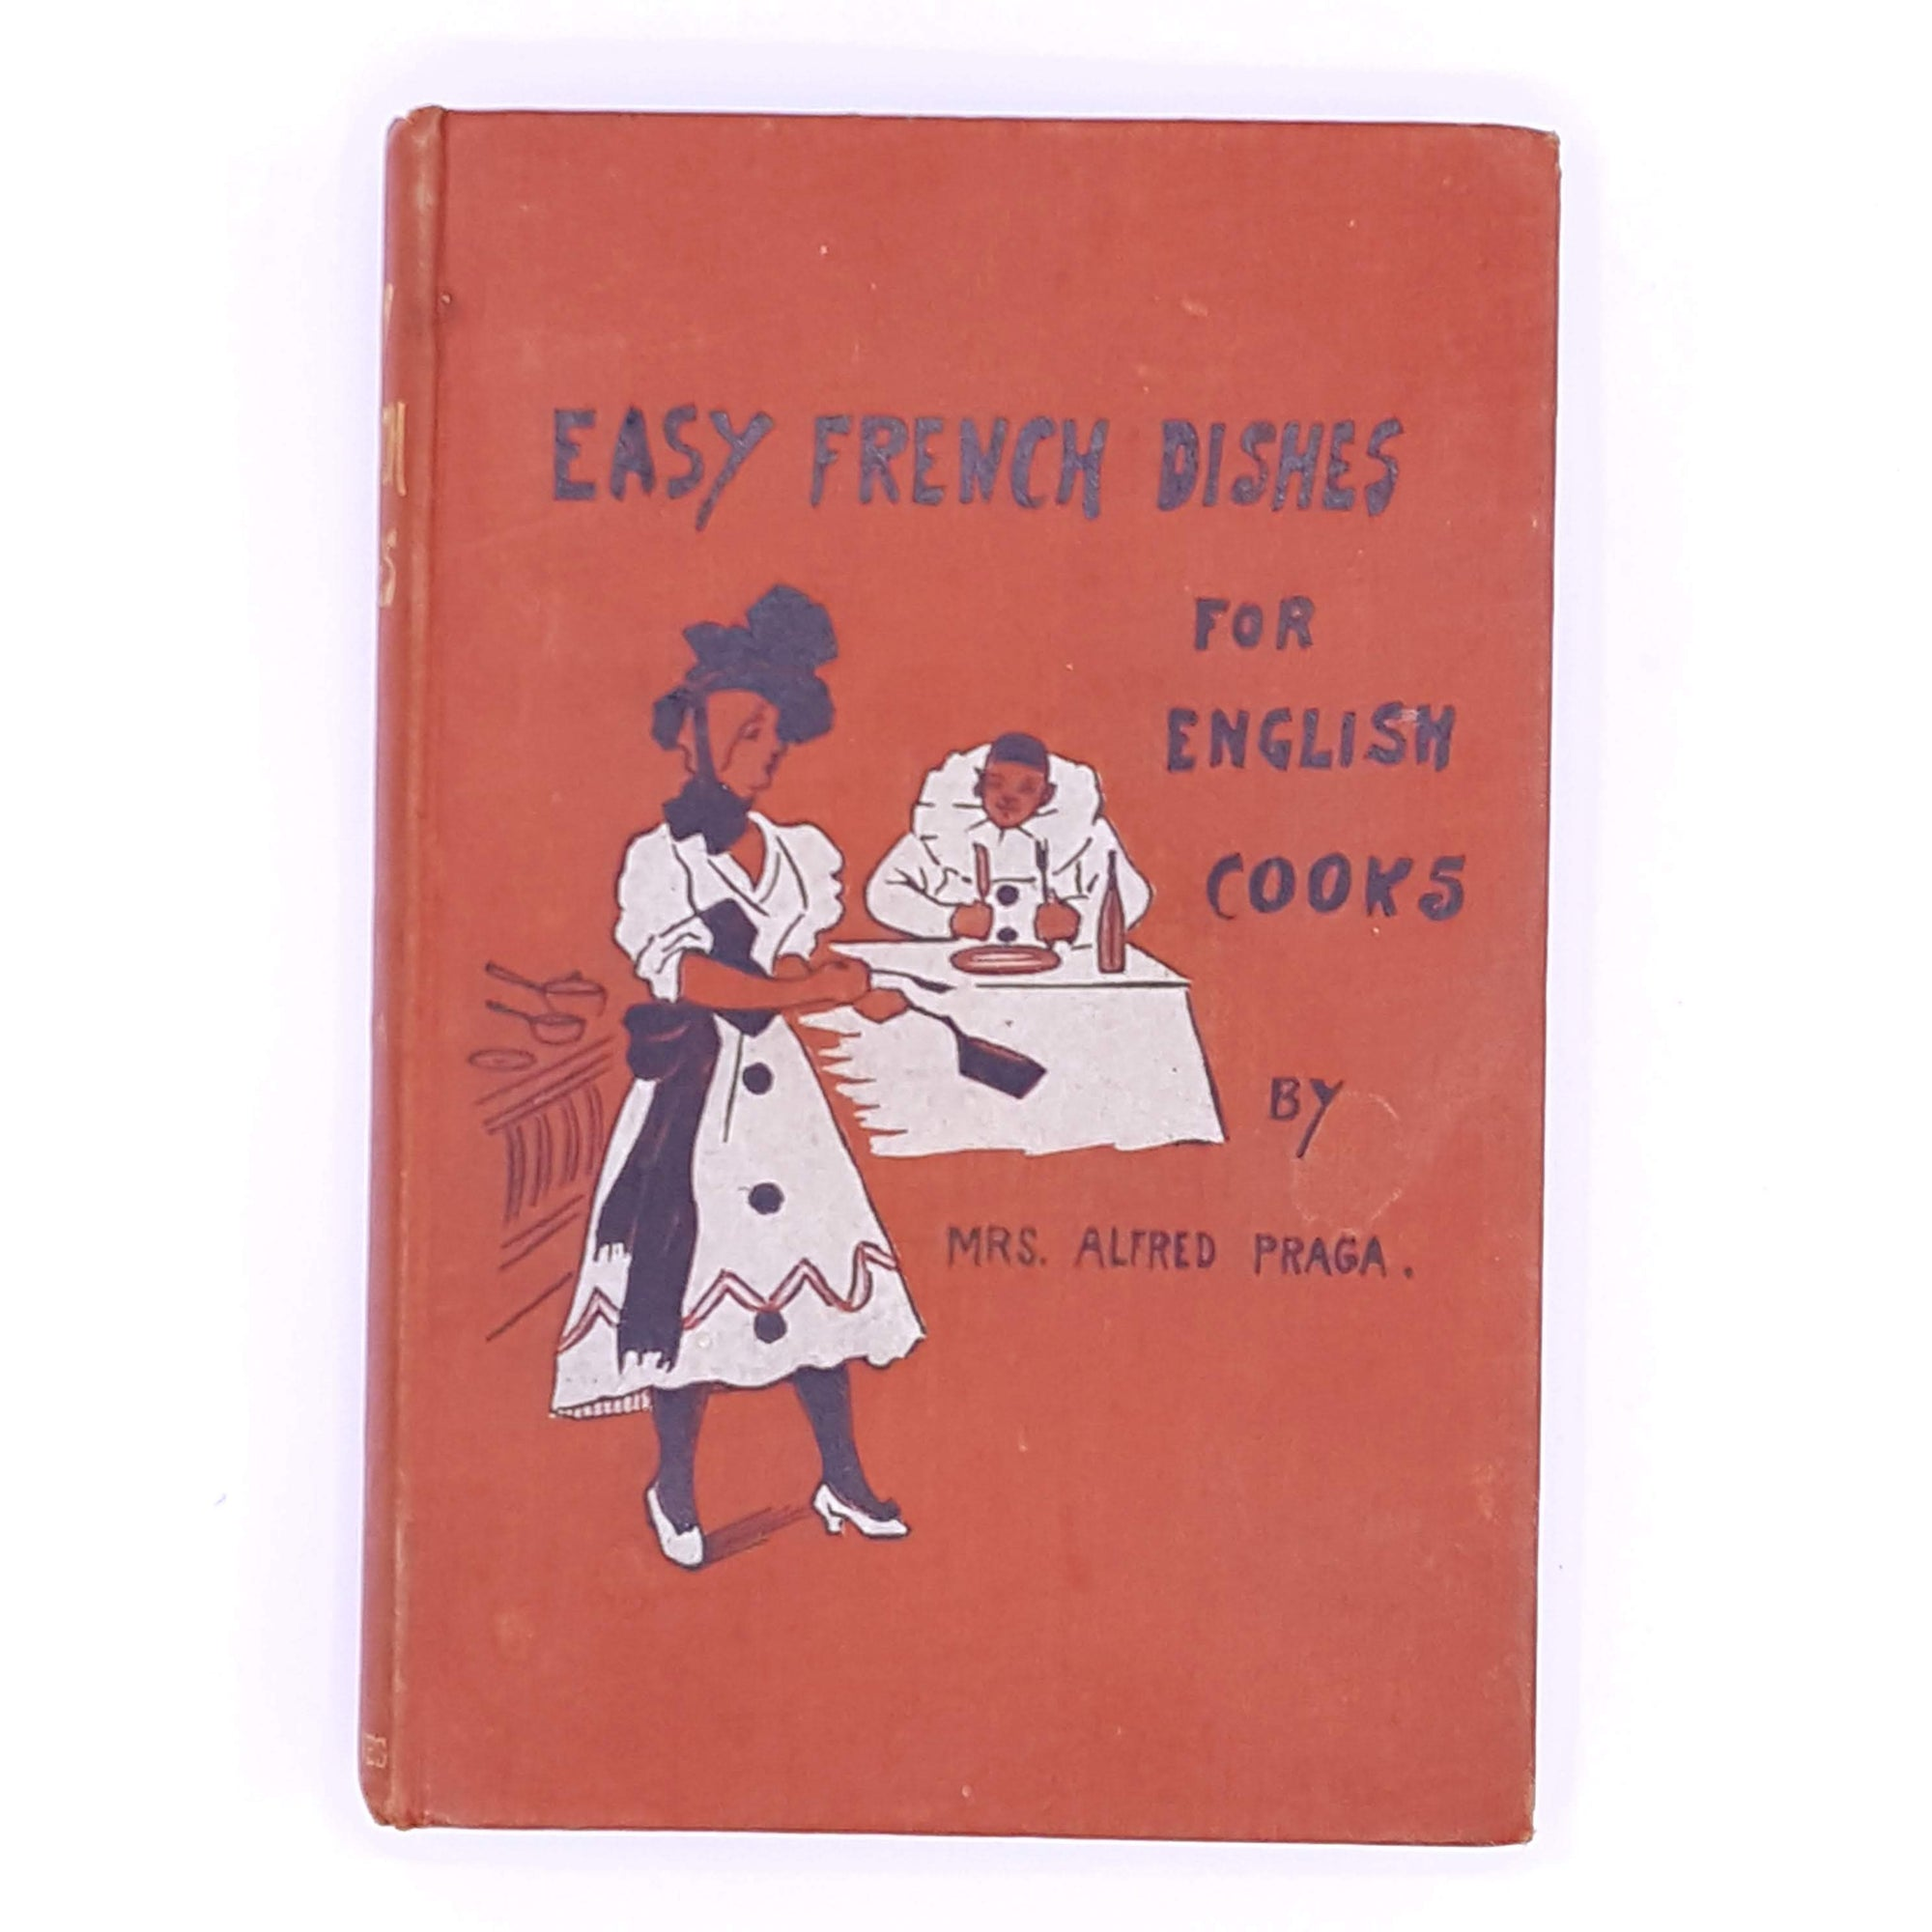 Easy French Dishes for English Cooks by Mrs. Alfred Praga 1900